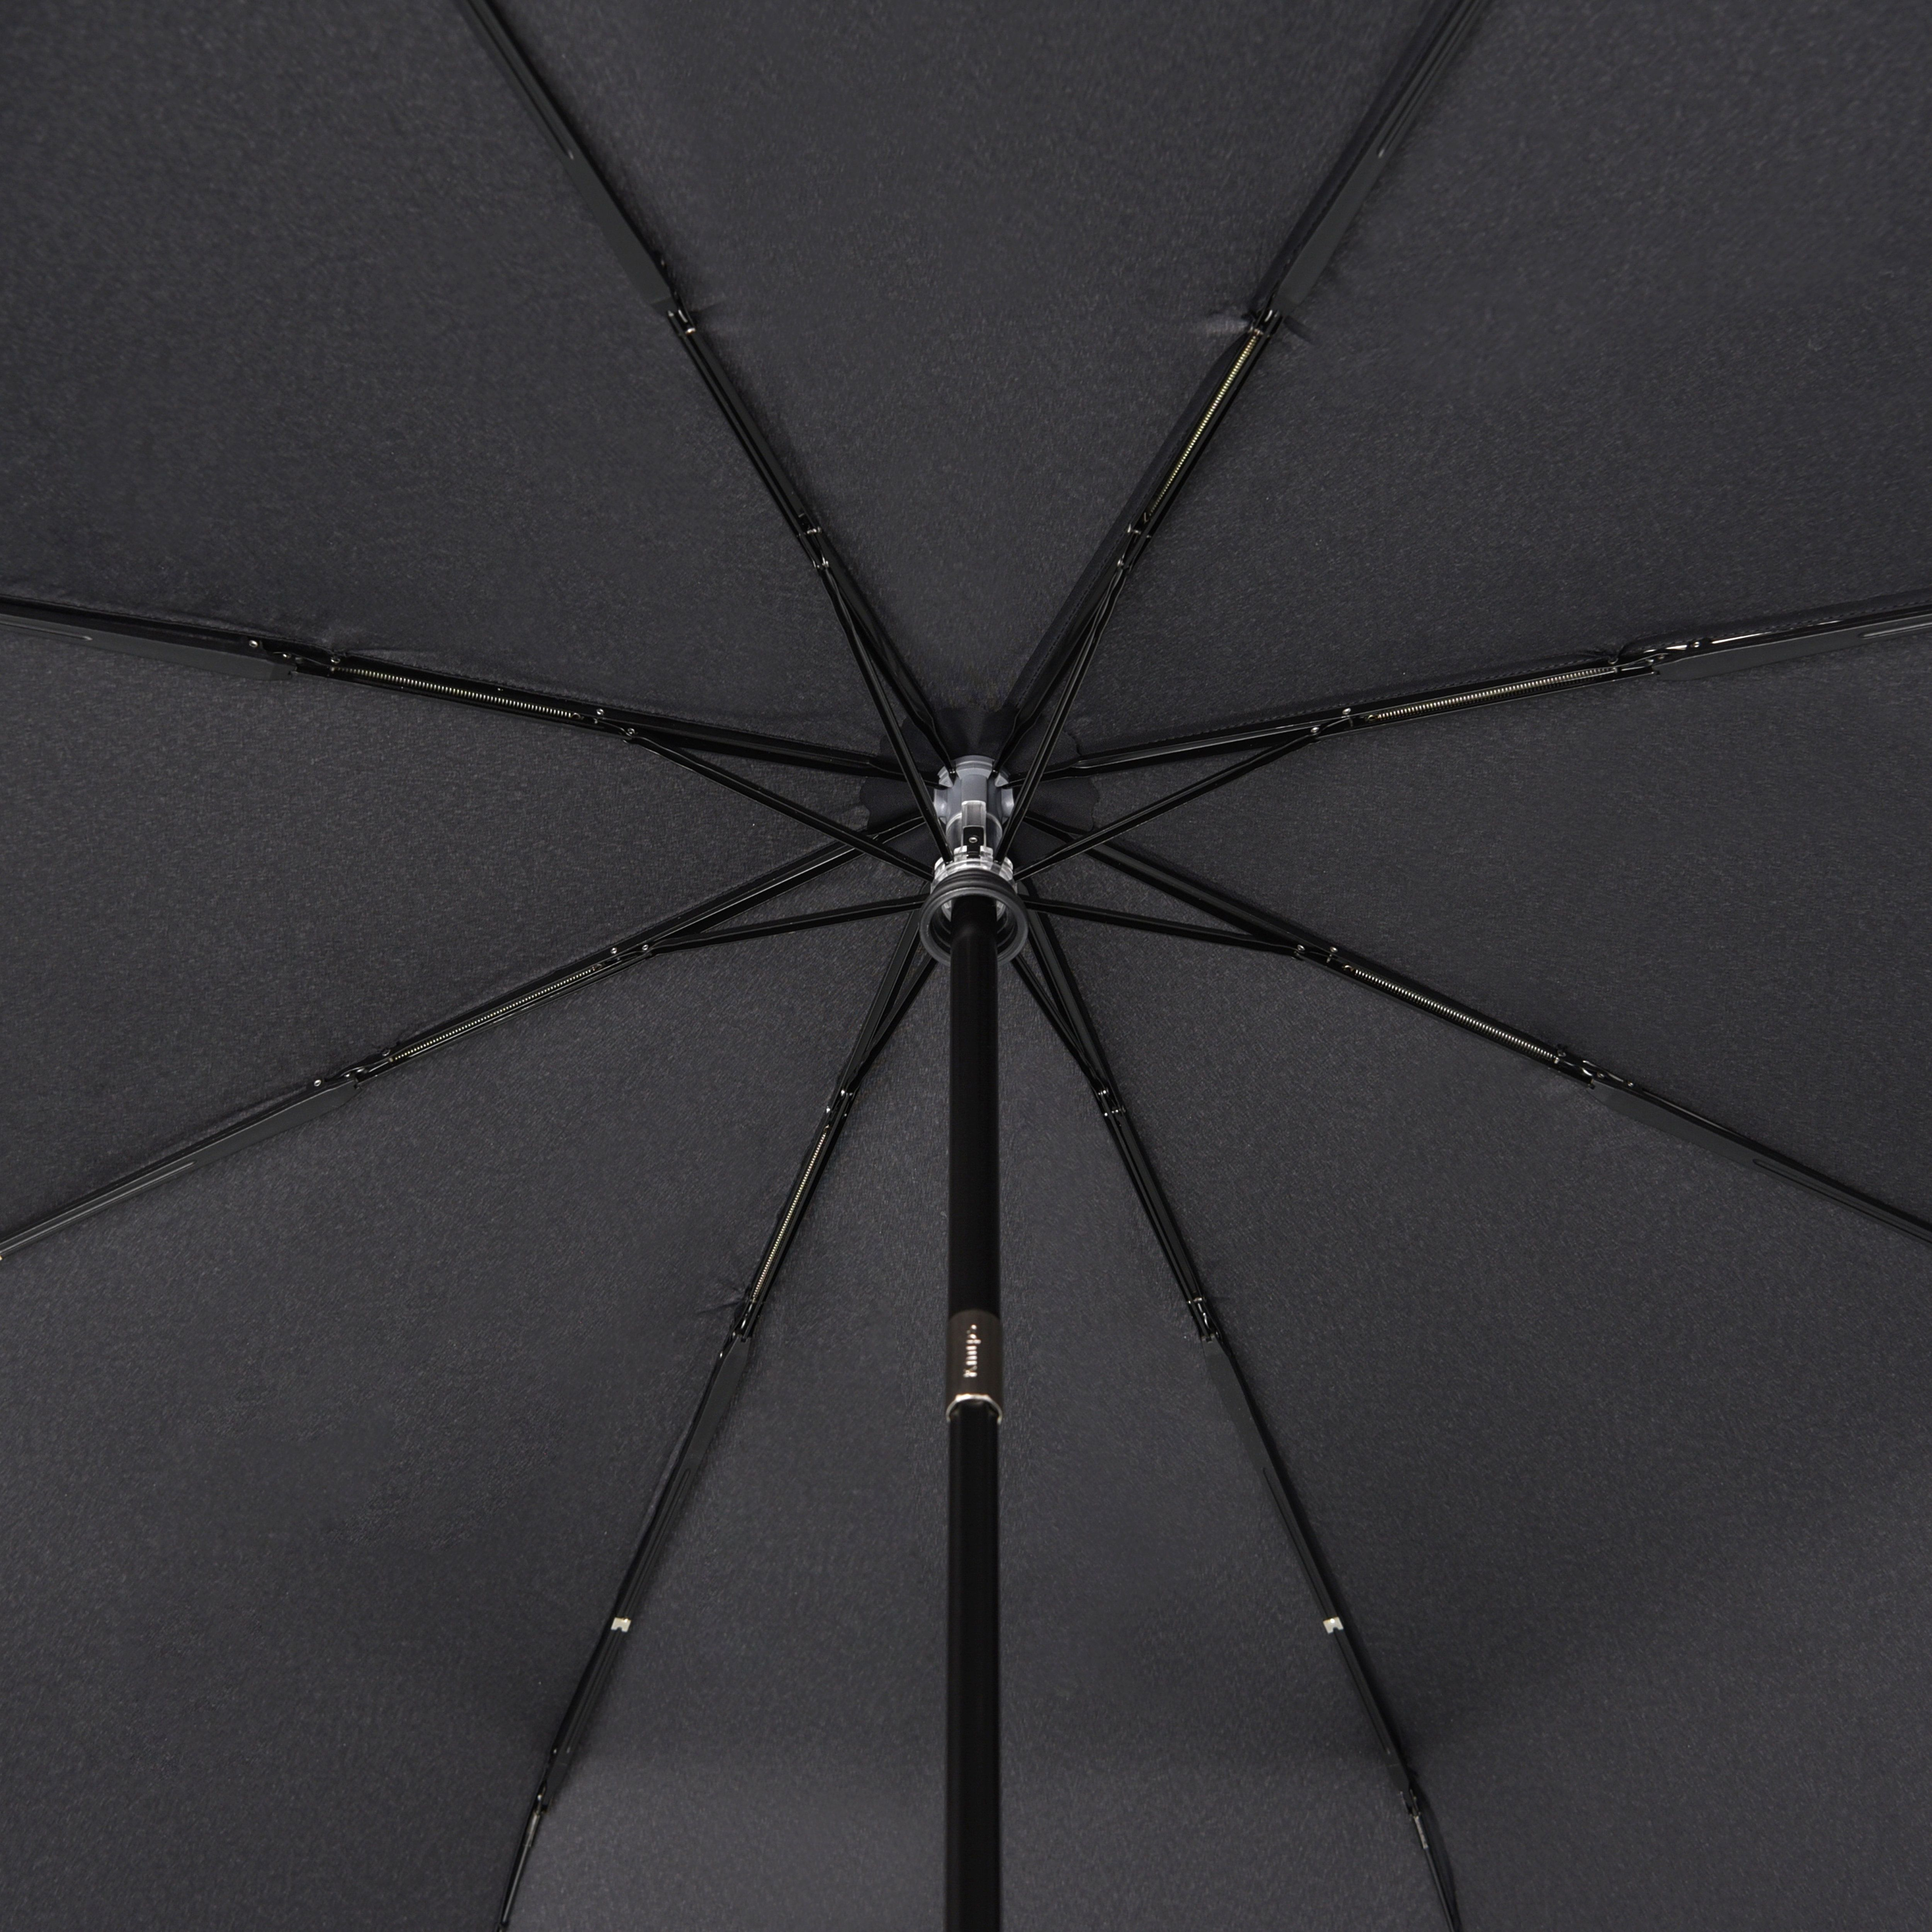 Knirps Umbrella T.400 extra large duomatic - photo 4